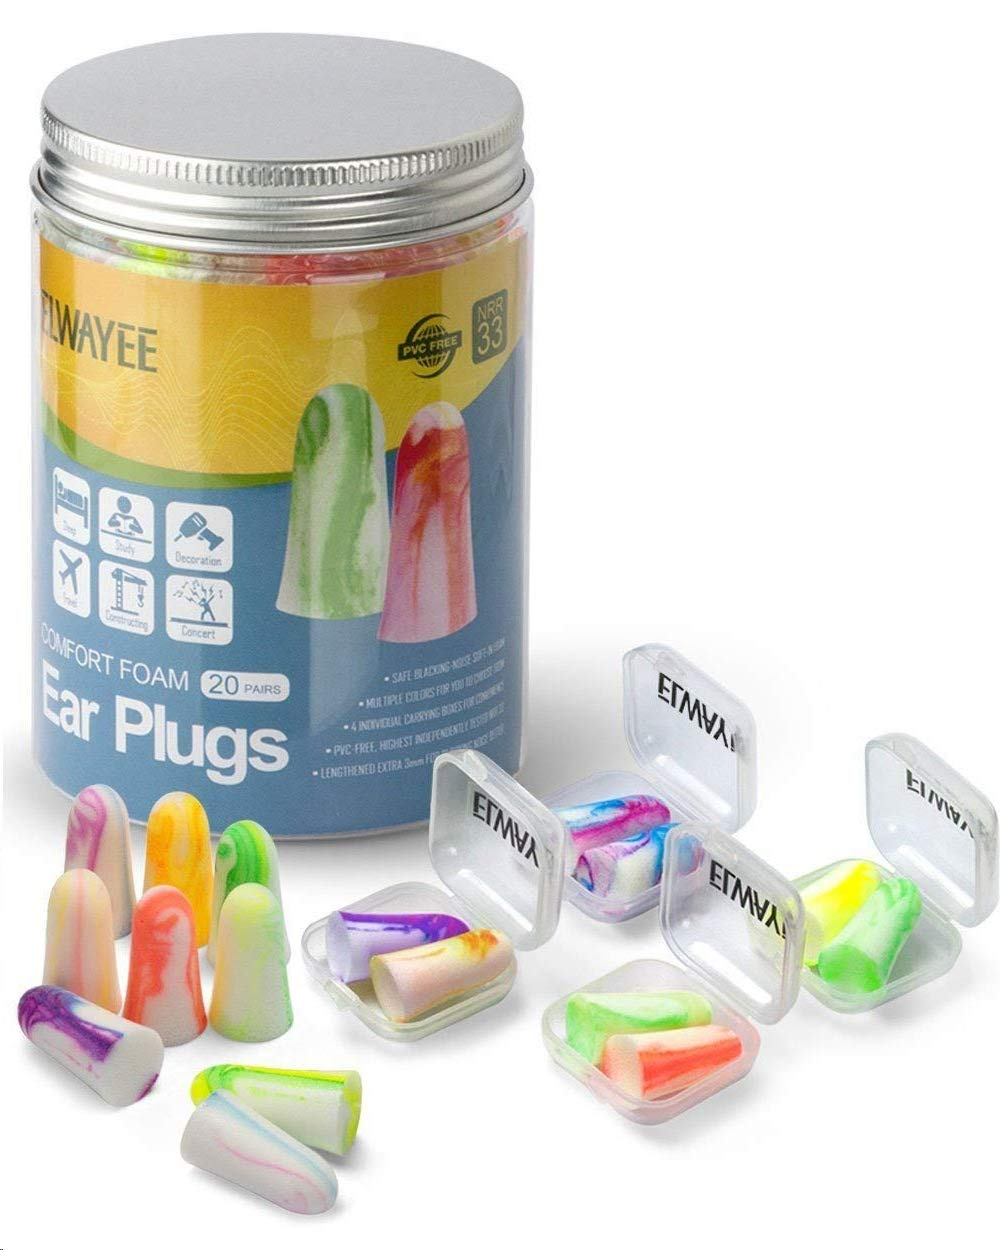 Sleep Noise Cancelling Ear Plugs - Soft in Foam Hearing Protection Earplugs & 4 Mini Carrying Cases Set: Reusable Noise Reduction Ear Plugs for Sleeping, Travelling, Snoring - 20 Pairs by ELWAYEE